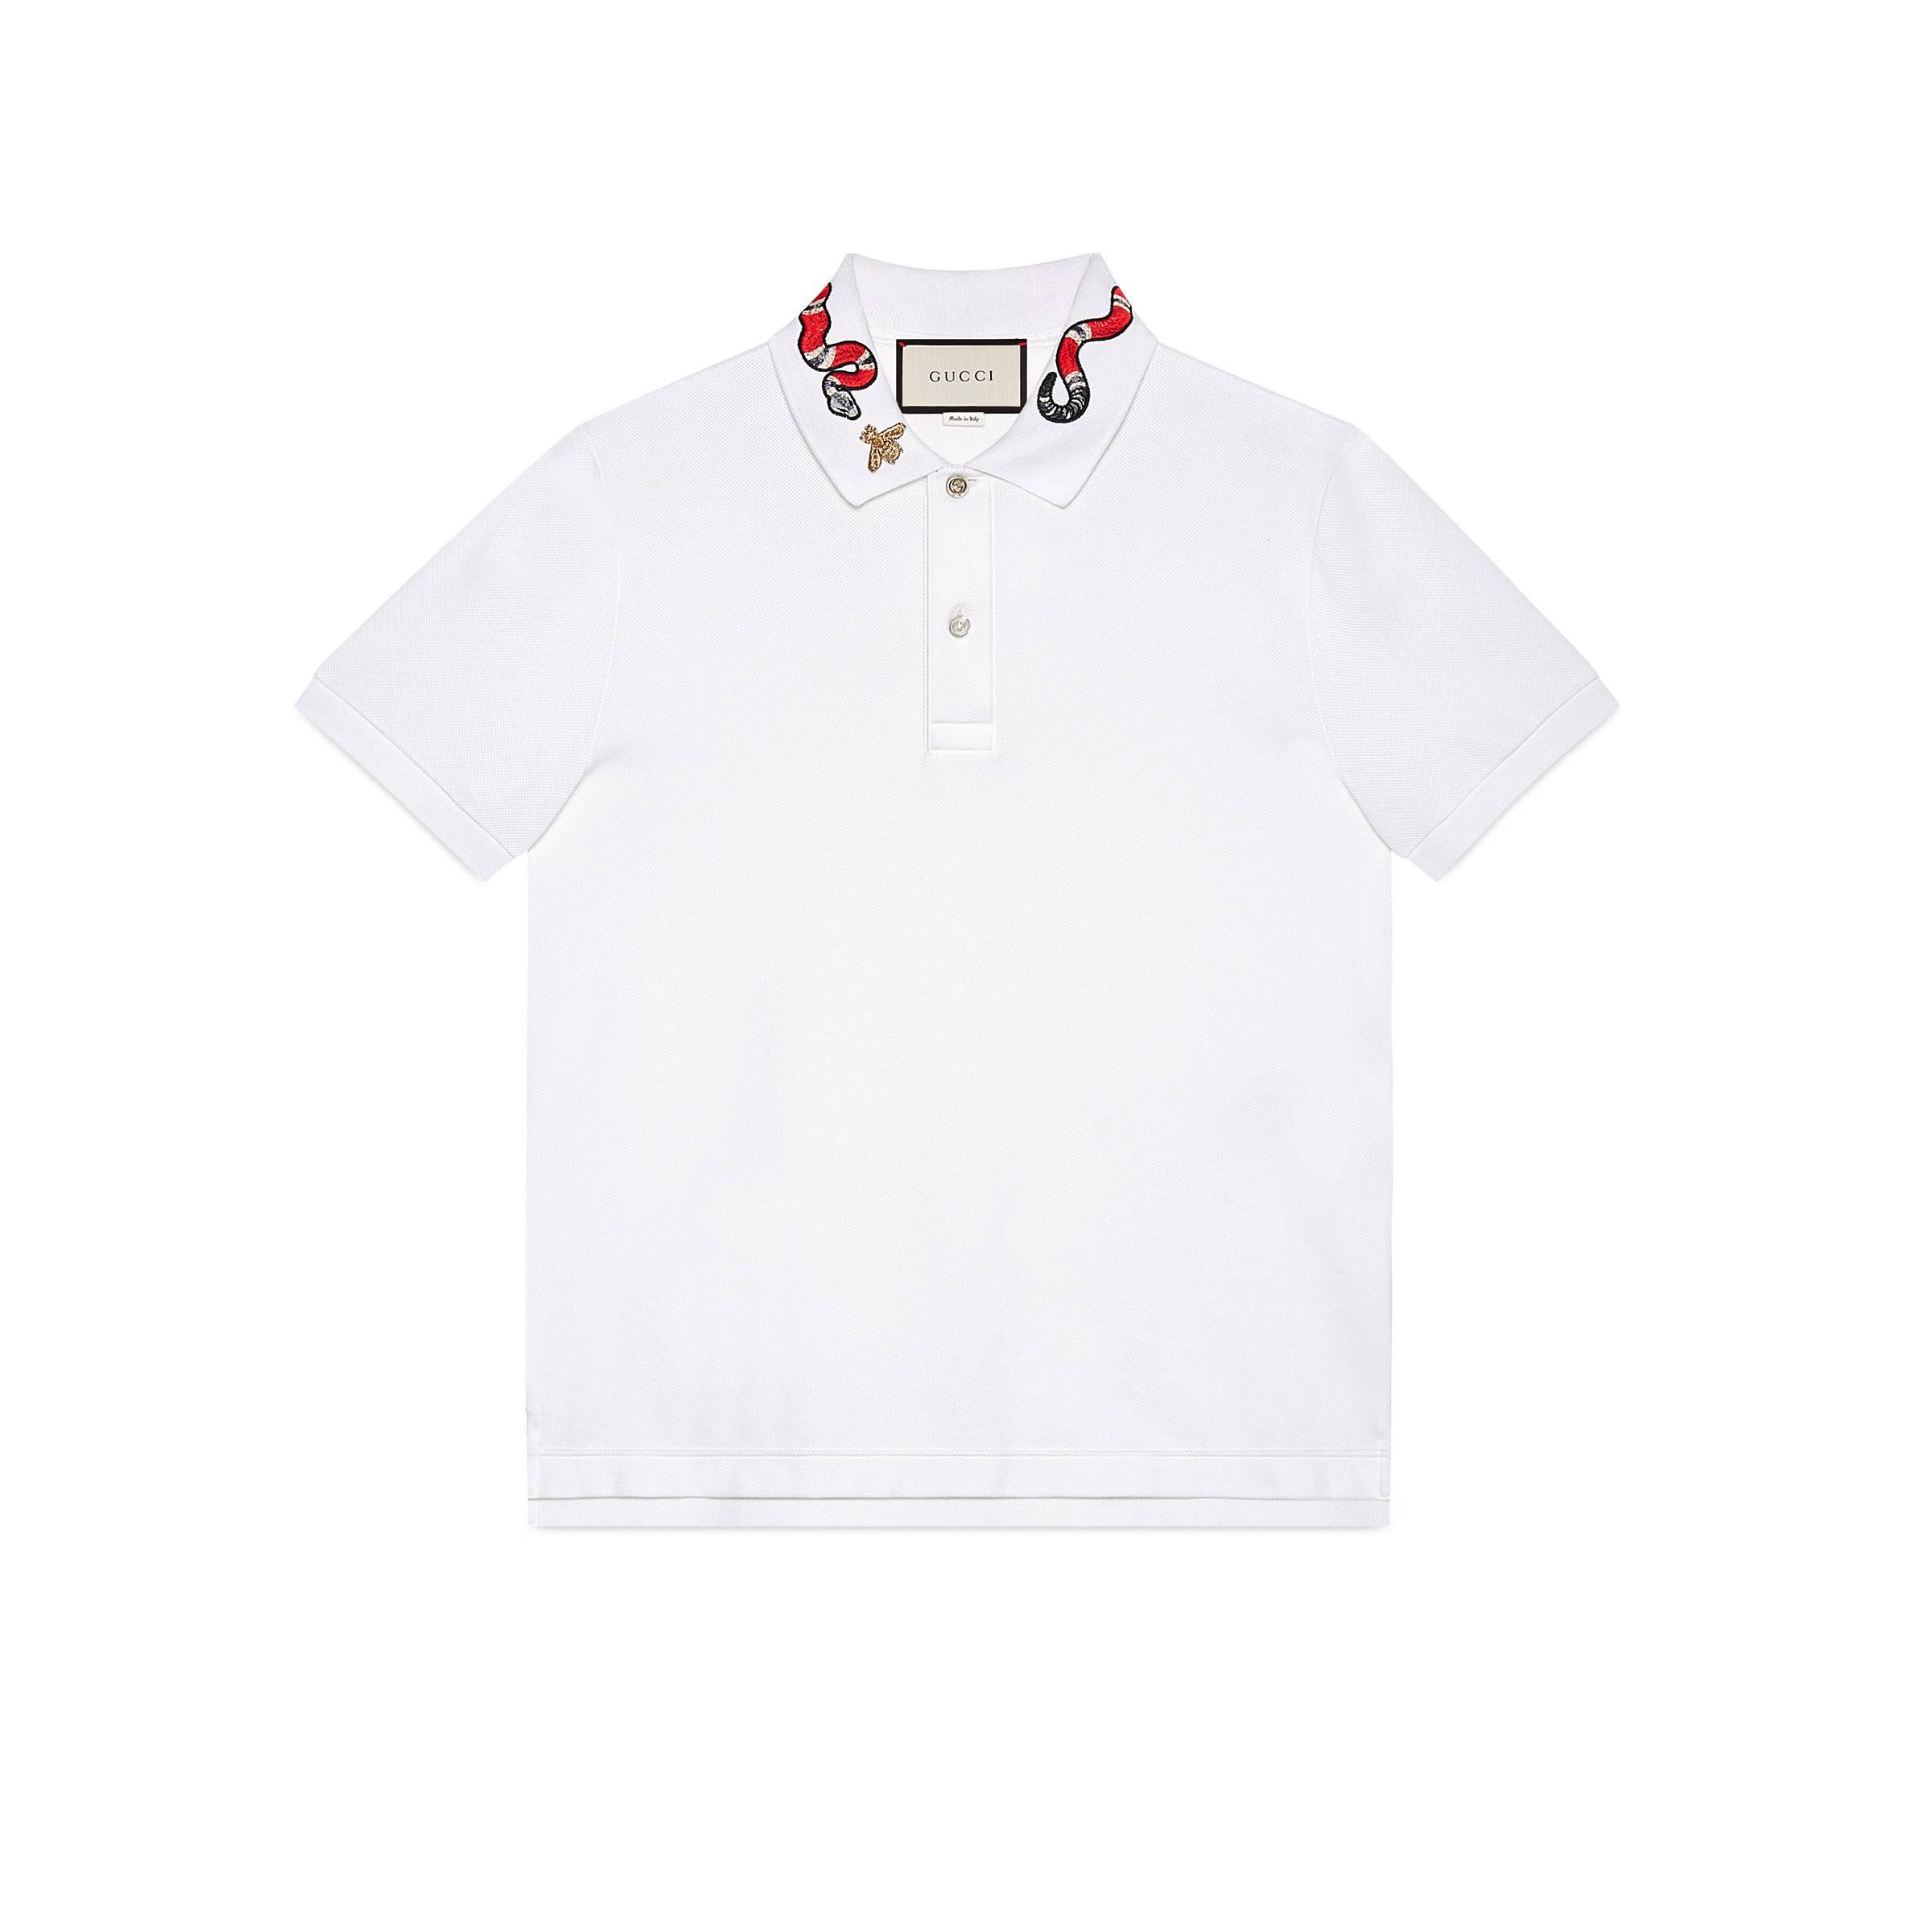 62713be5 Gucci Cotton Polo With Snake Embroidery in White for Men - Save 21 ...